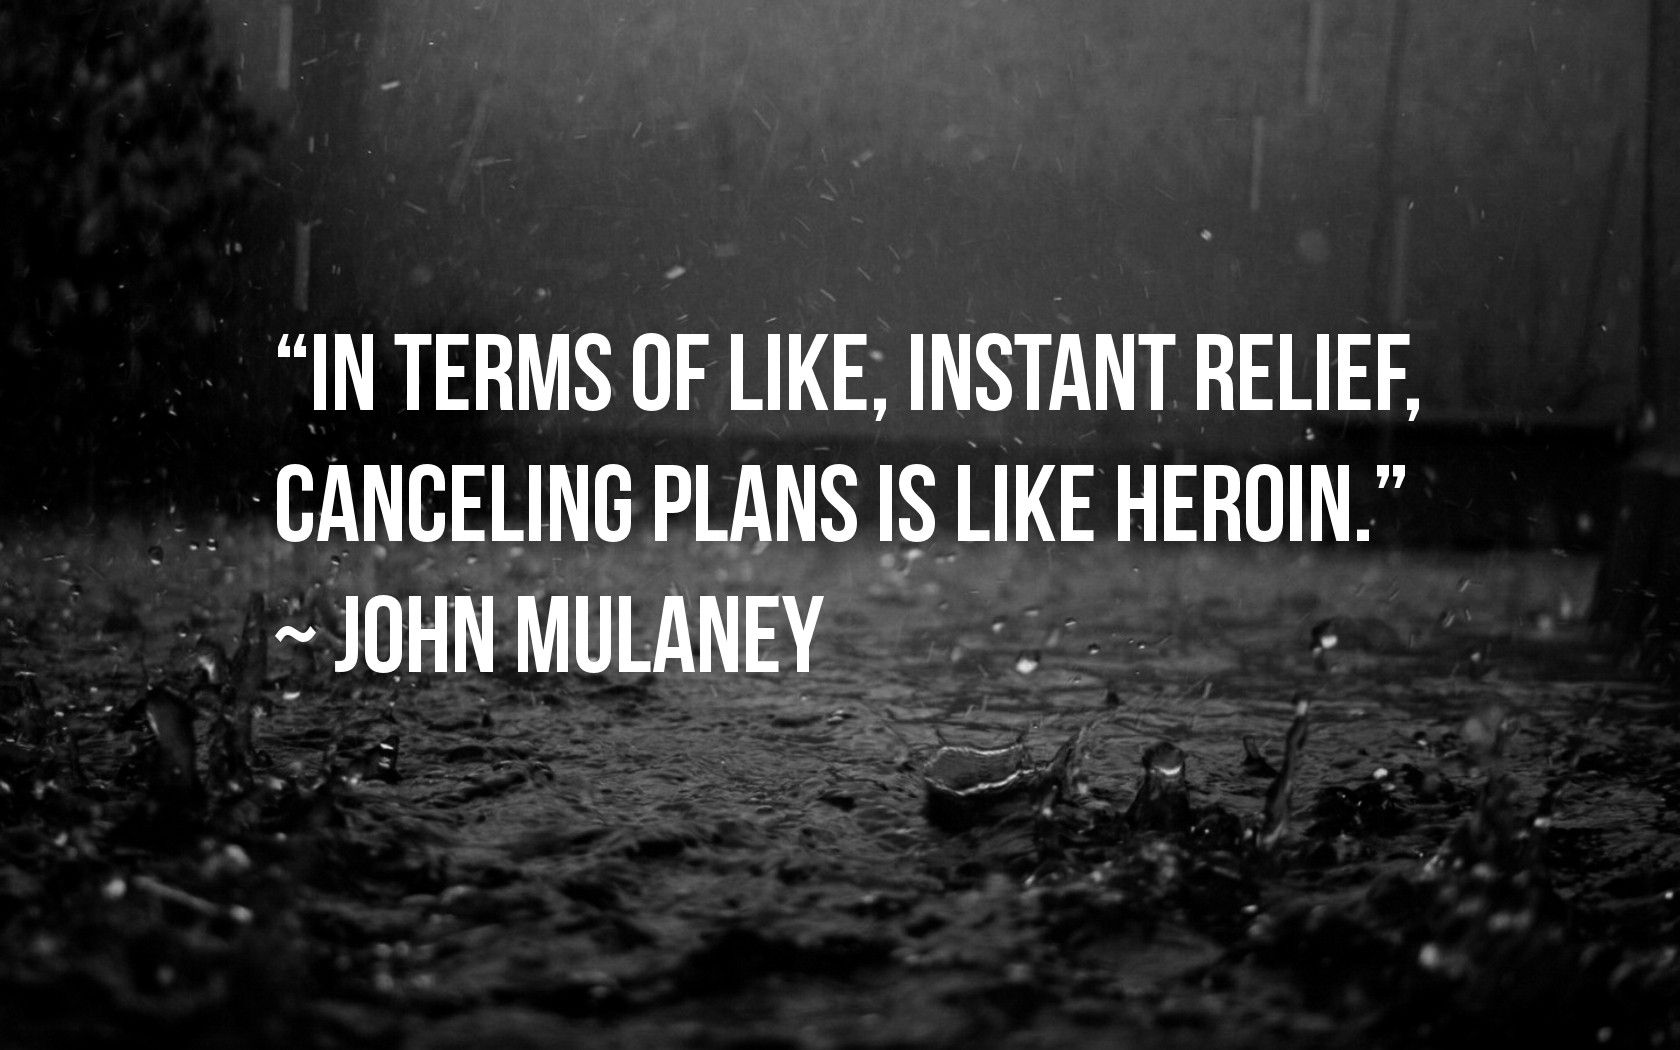 """In terms of like, instant relief, canceling plans is like heroin."" -John Mulaney #quote #words #comedian"